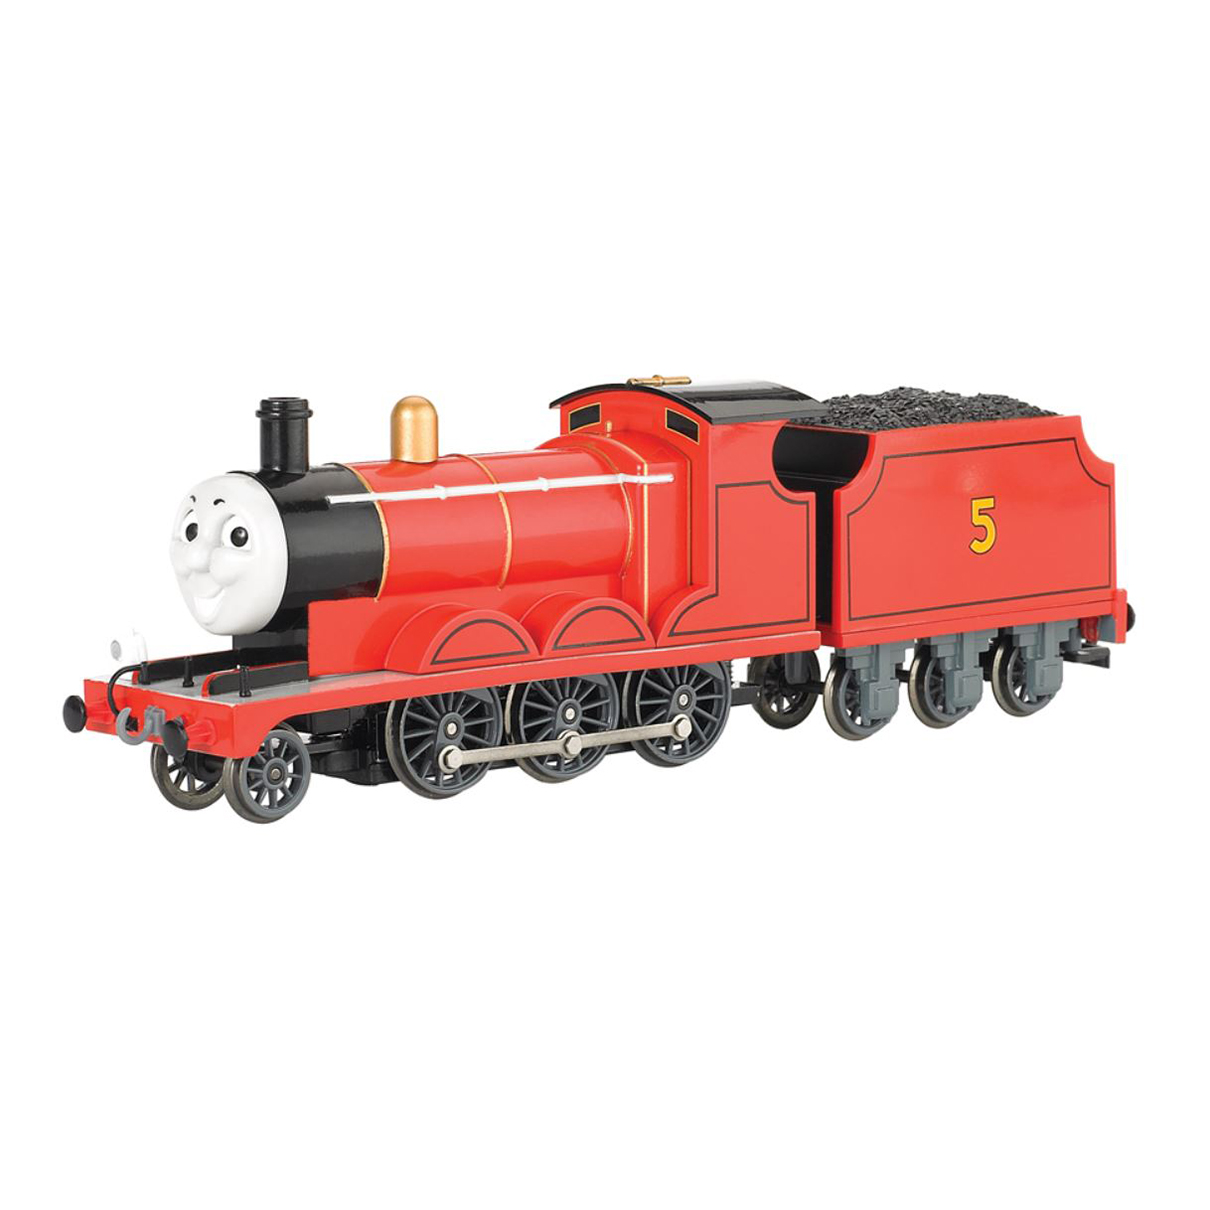 Target Toy Trains : Bachmann trains james the red engine with moving eyes ho